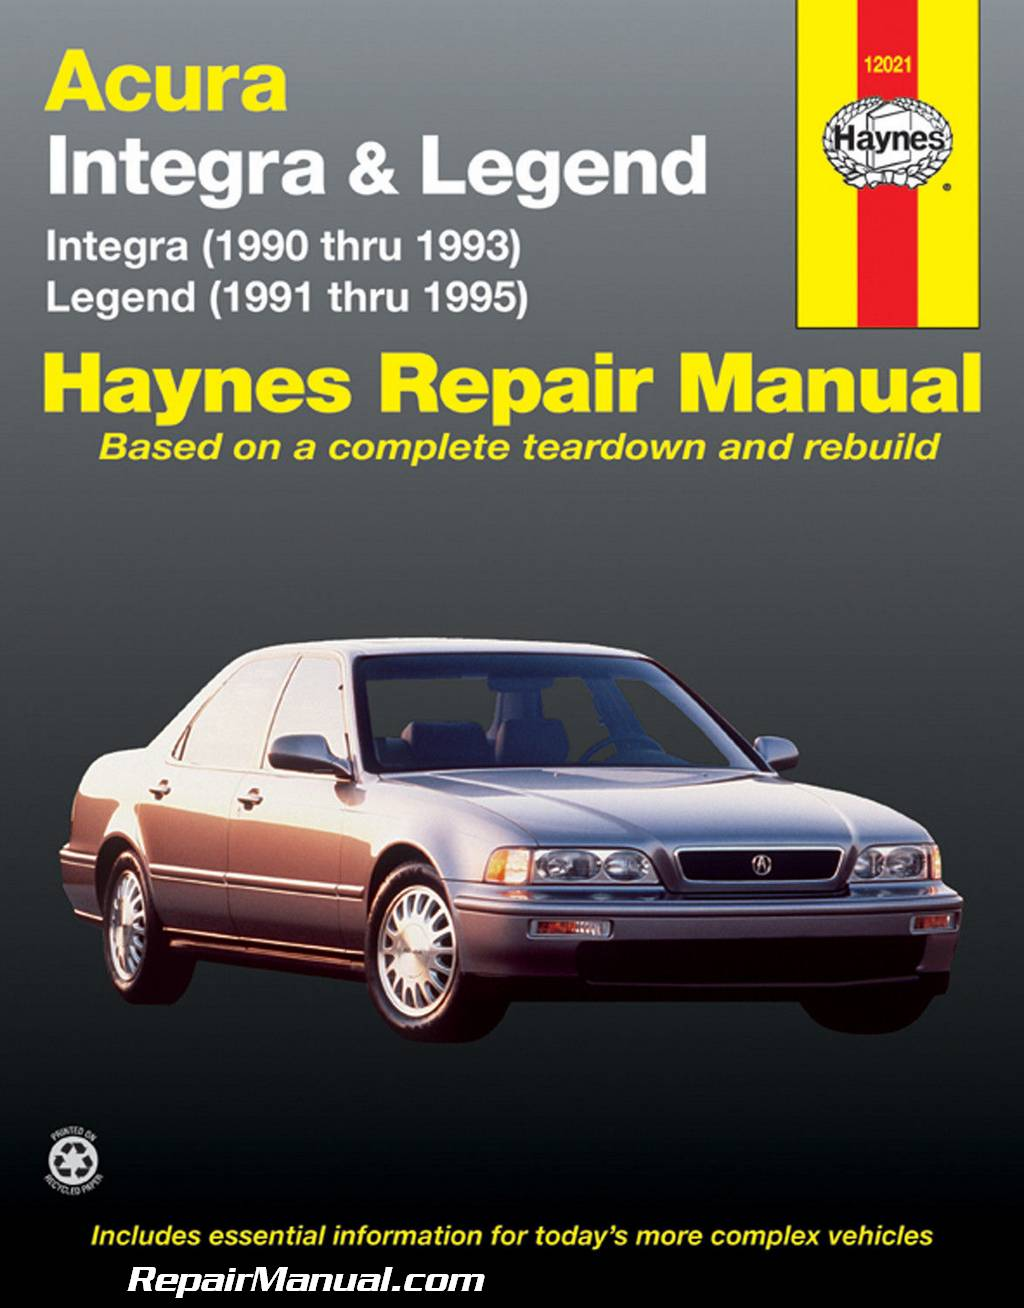 acura legend 1991 1995 haynes automobile repair manual rh repairmanual com acura legend repair manual pdf 1995 acura legend repair manual pdf